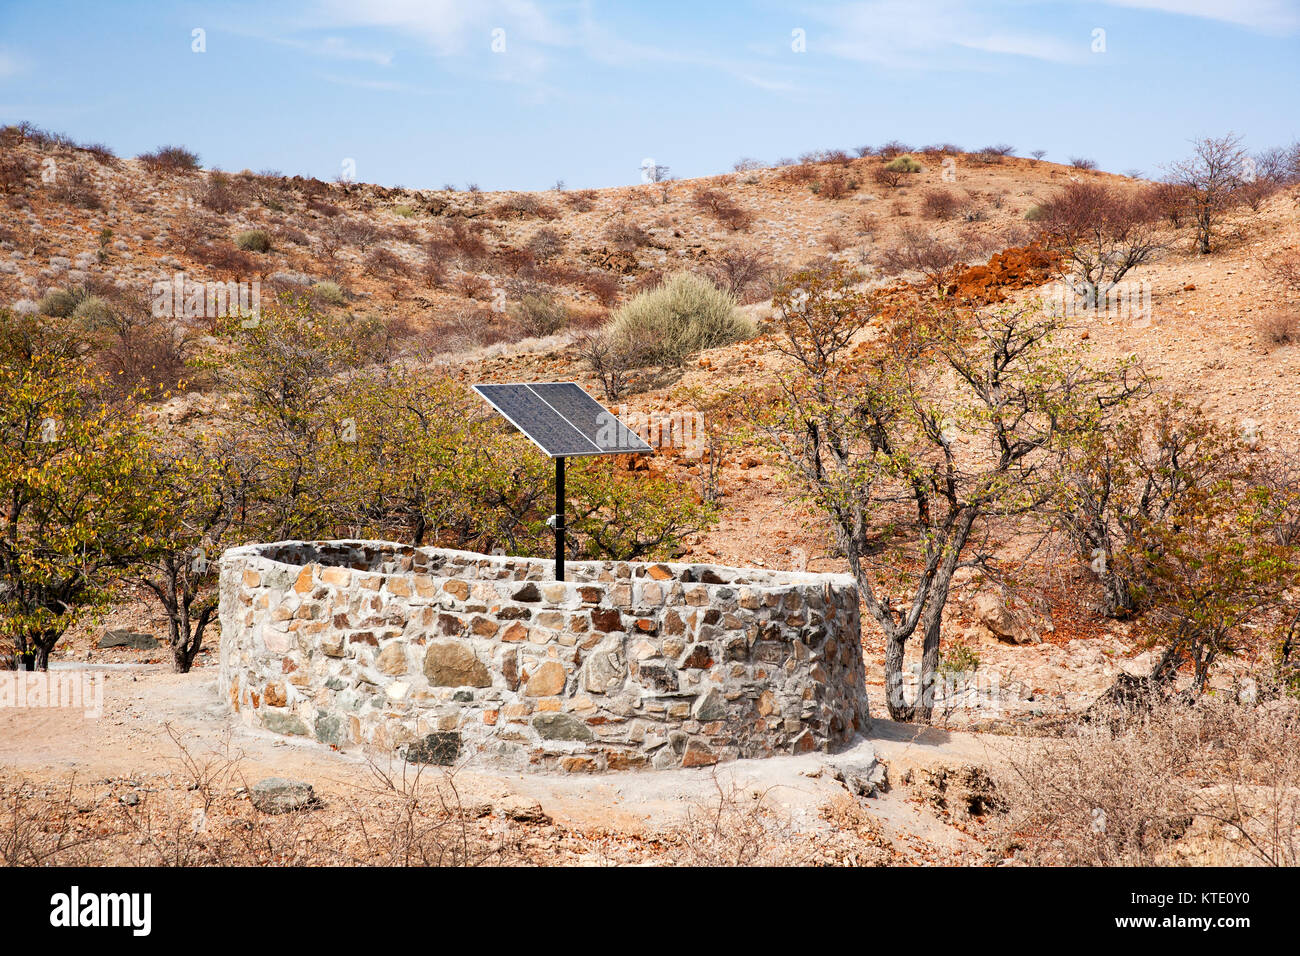 Solar water pump at borehole - Huab Under Canvas, Damaraland, Namibia, Africa - Stock Image